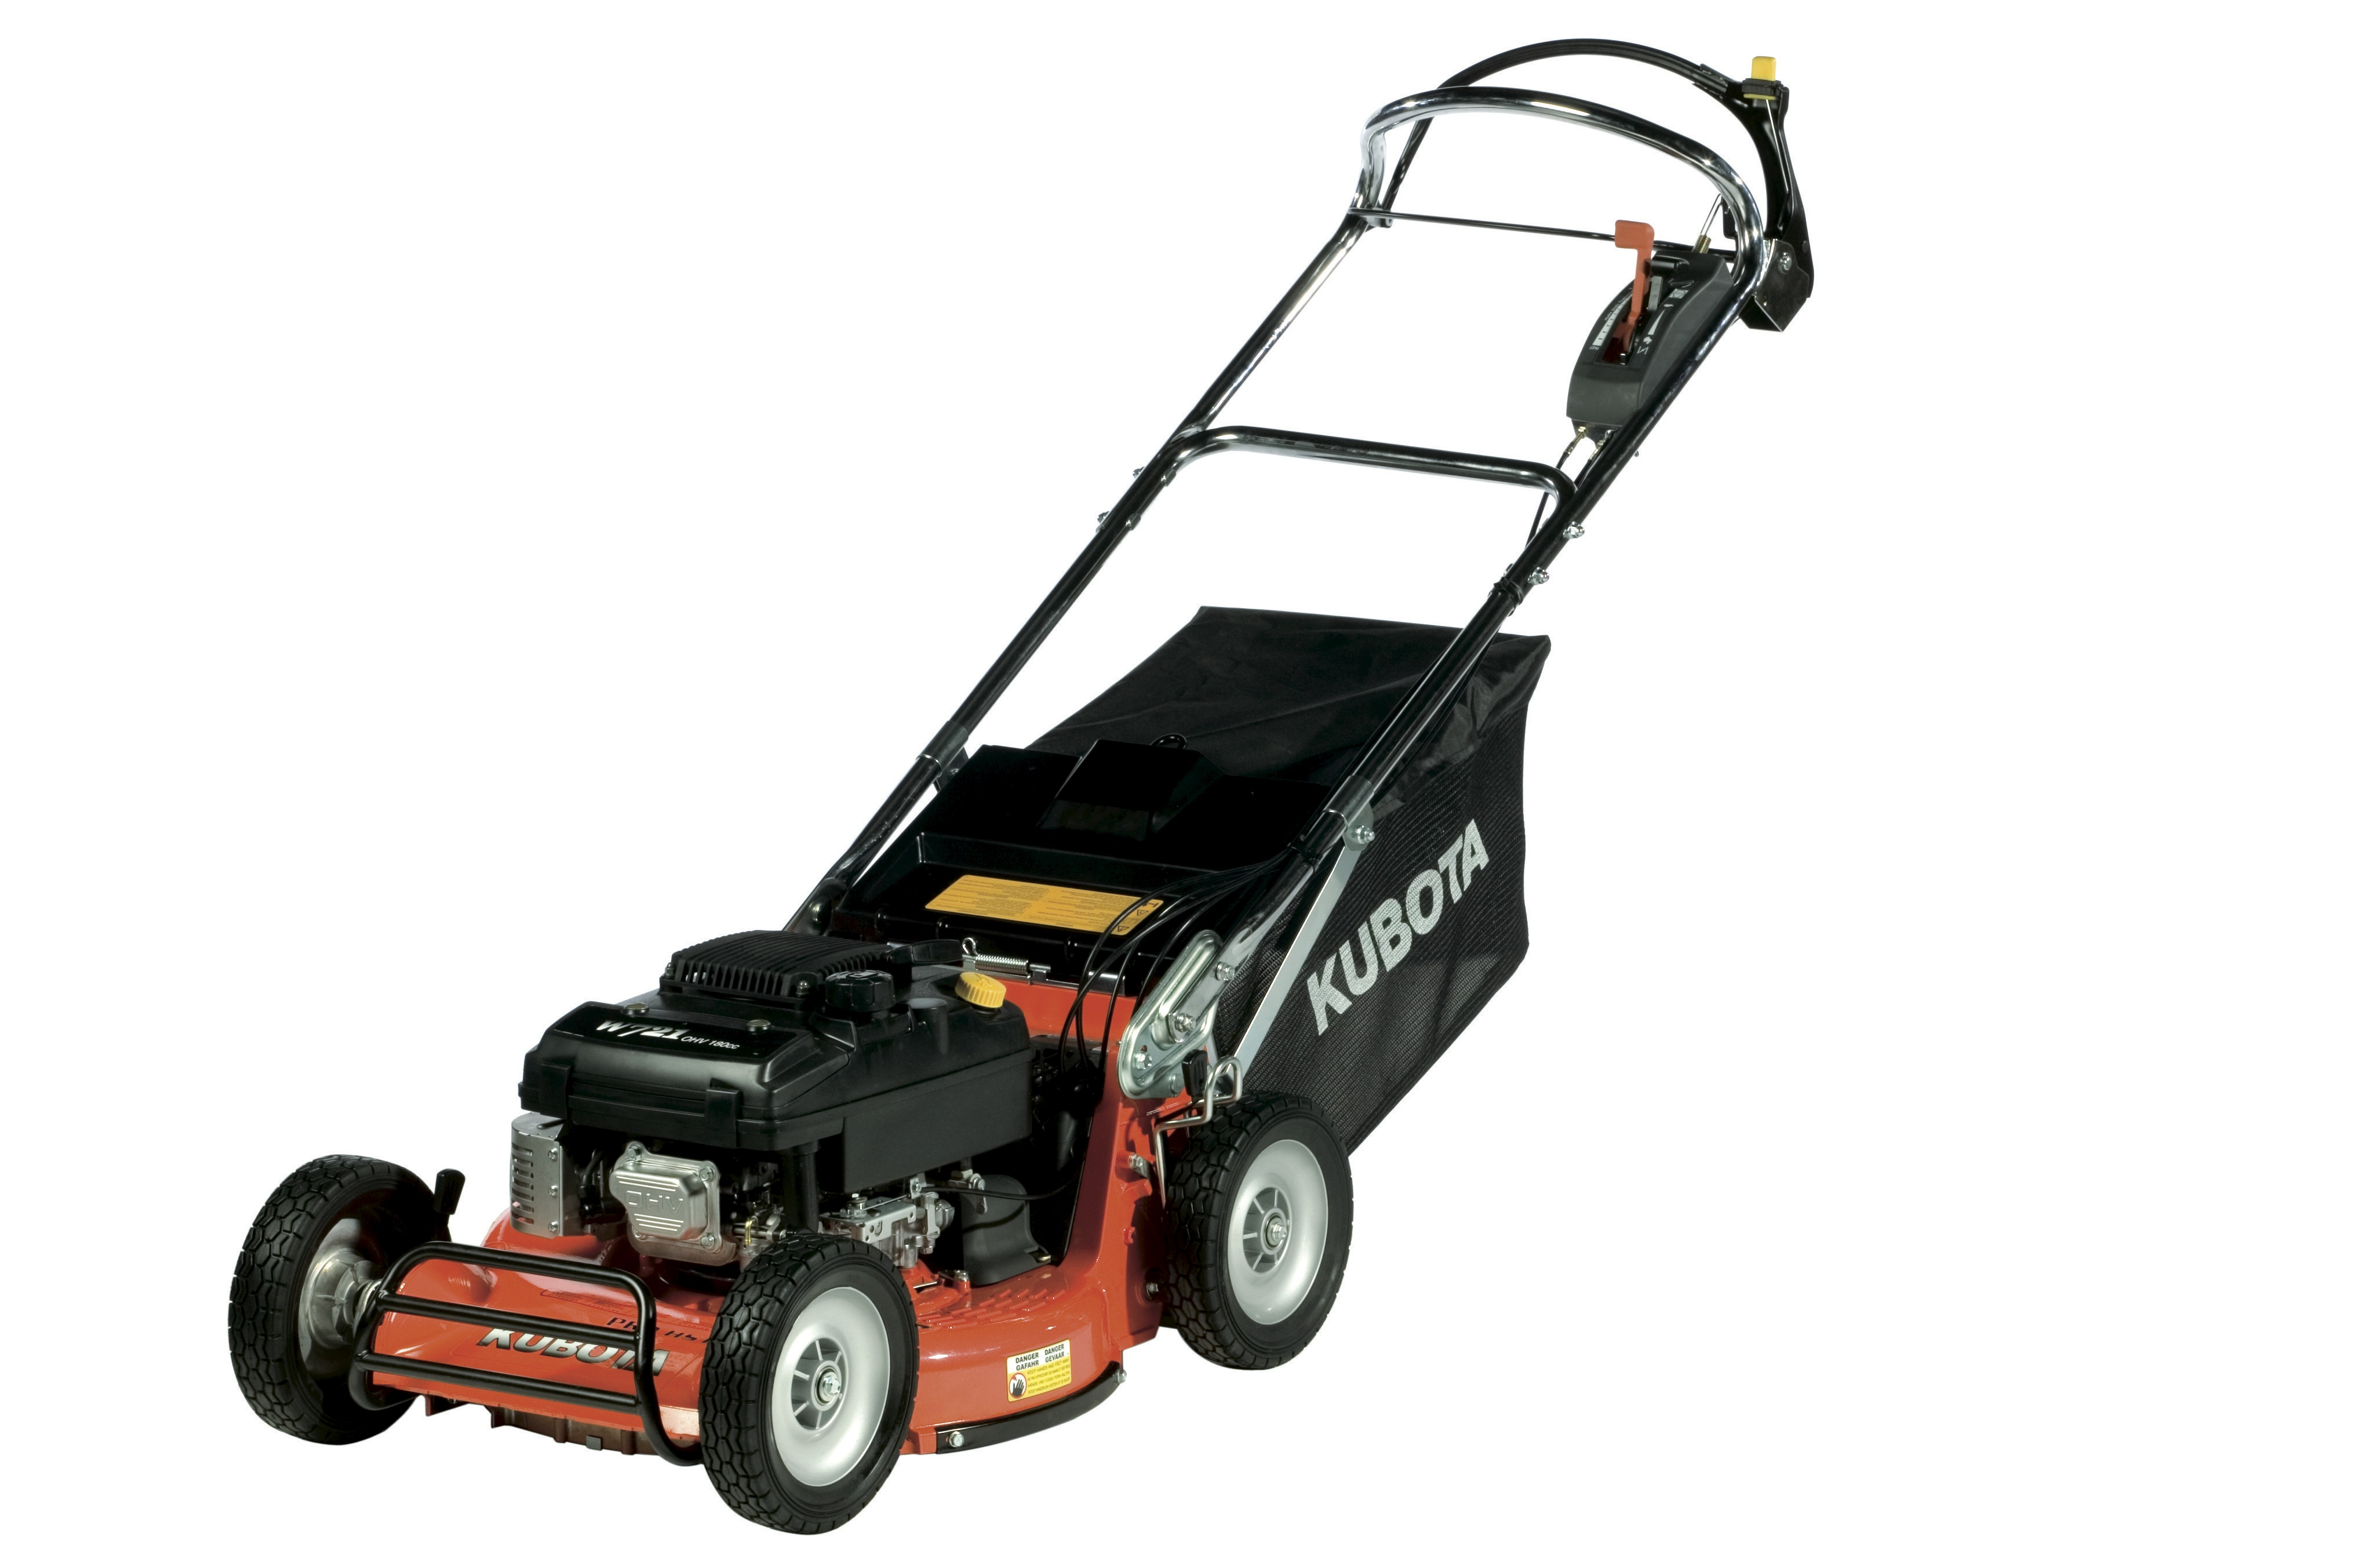 Kubota extend lawn-care range with launch of new walk behind mower